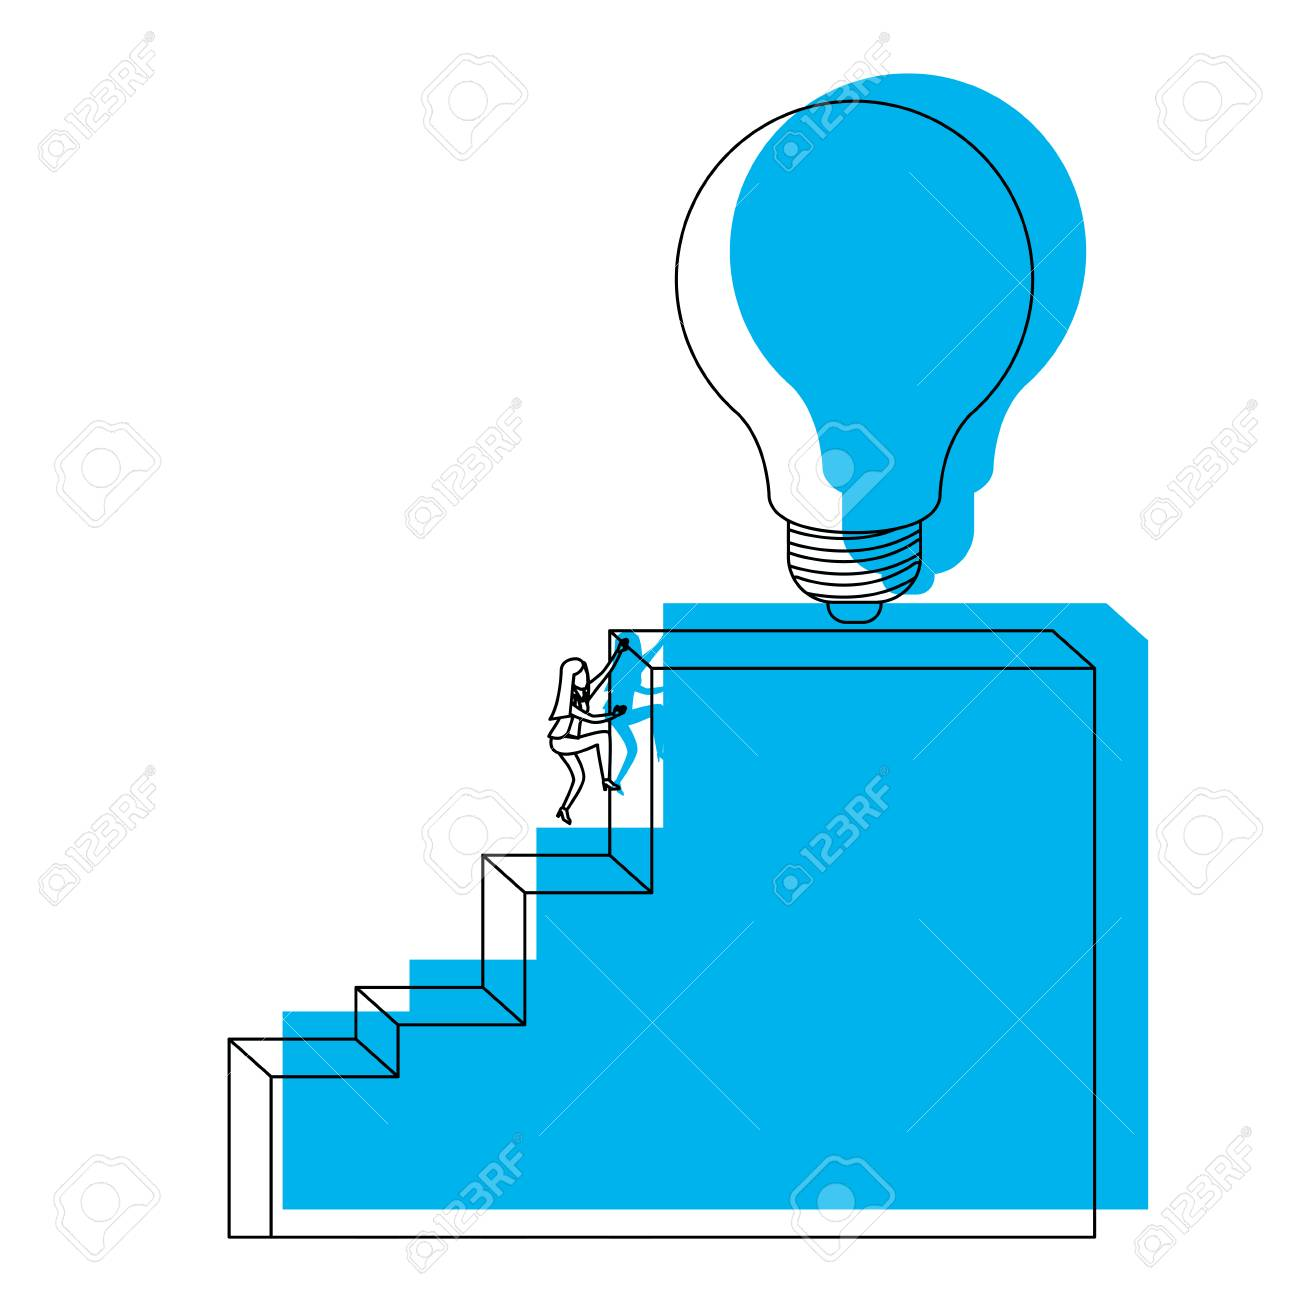 Businesswoman Climbing Stair Block Structure With Light Bulb In The Top  Blue Watercolor Silhouette Vector Illustration